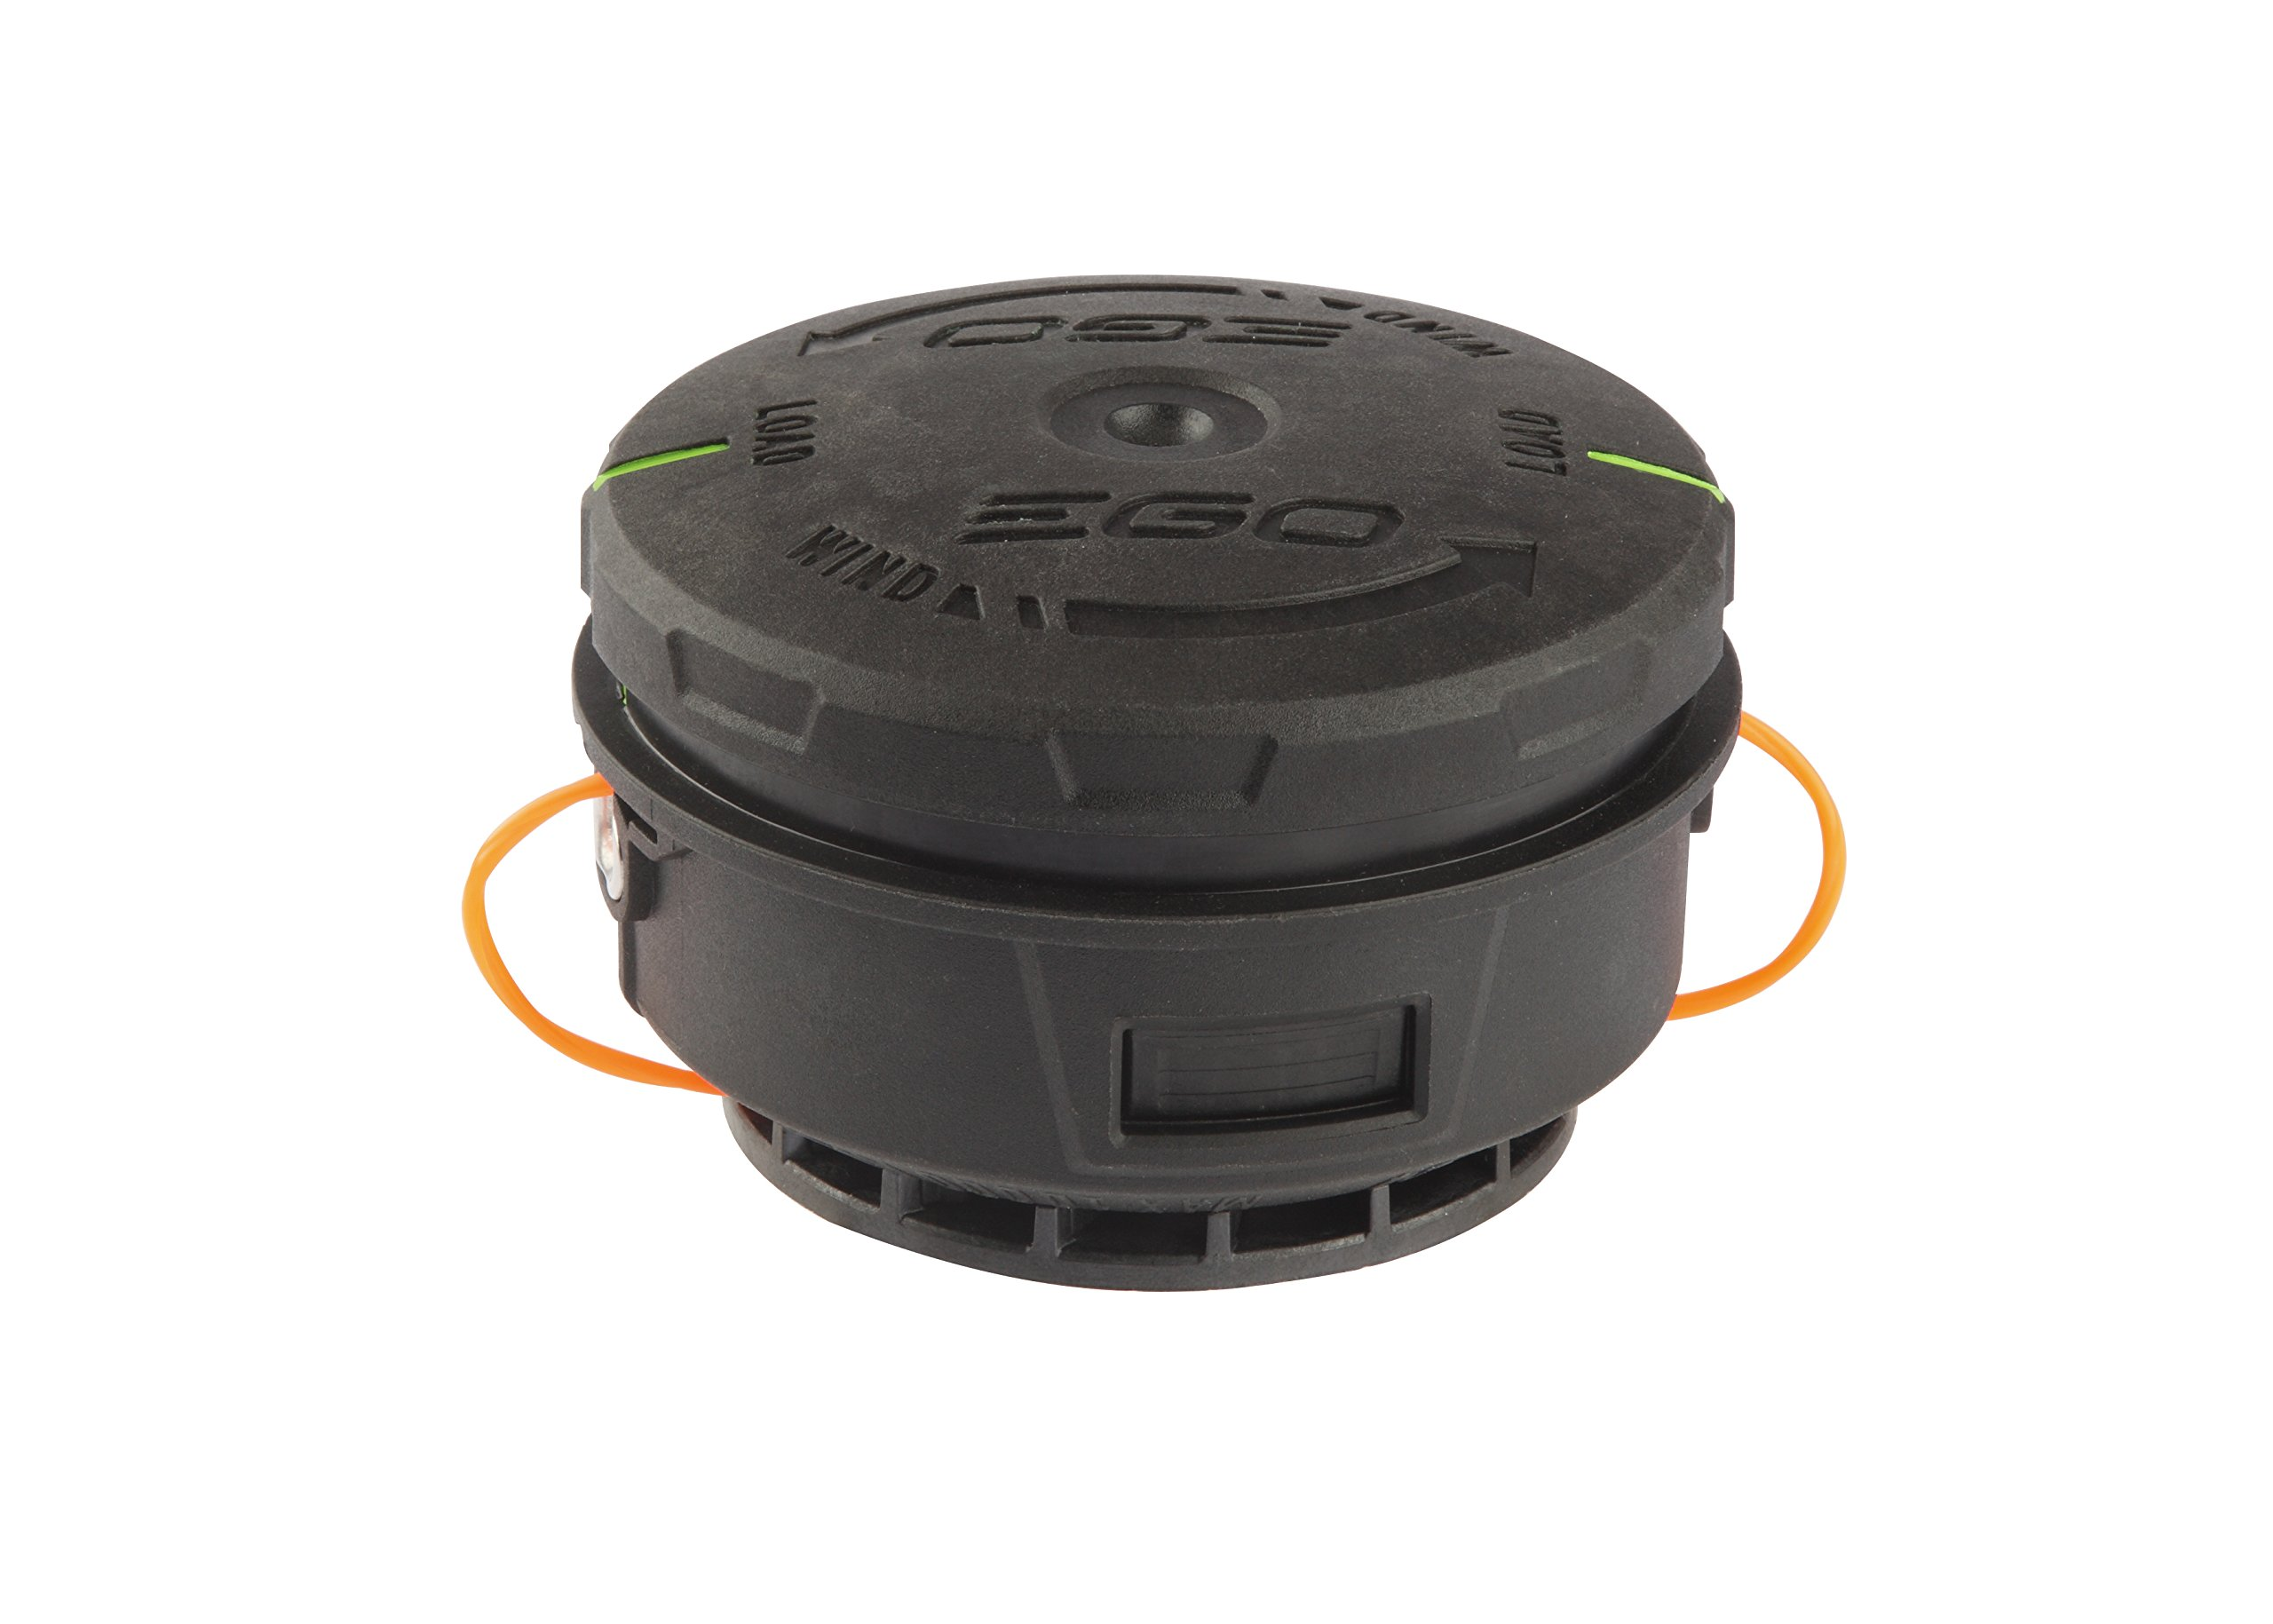 EGO Power+ AH1500 15-Inch Rapid Reload Trimmer Head for EGO 15-Inch String Trimmer ST1500F/ST1500SF by EGO Power+